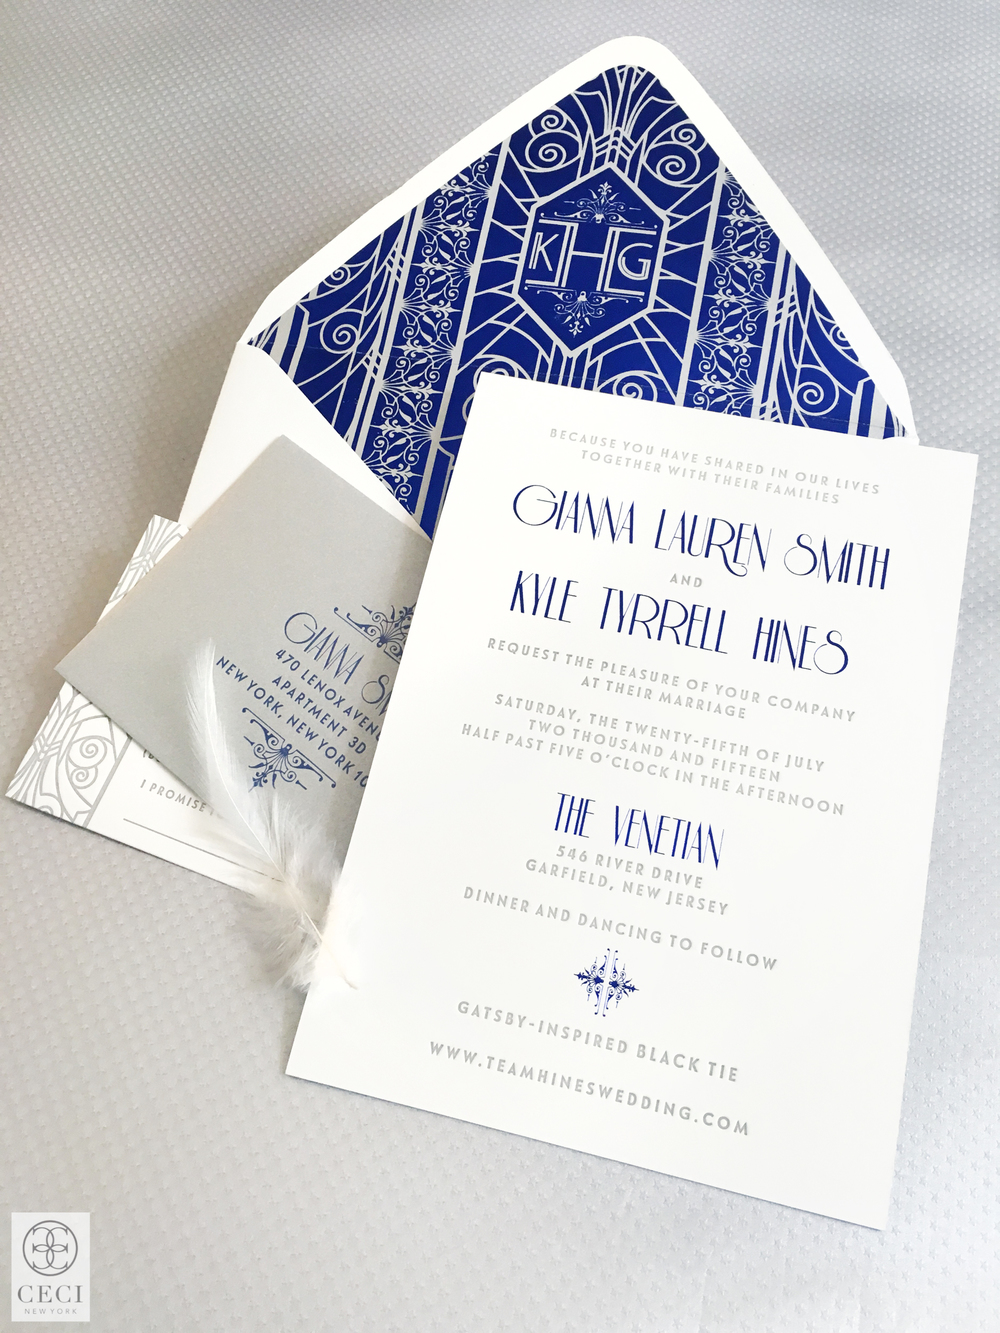 Ceci_New_York_New_Jersey_Invitations_Wedding_New_York_Elegance_Silver_Blue_Letterpress_Deco_Classic_Foil_Stamping_Custom_Couture_Personalized-123.jpg